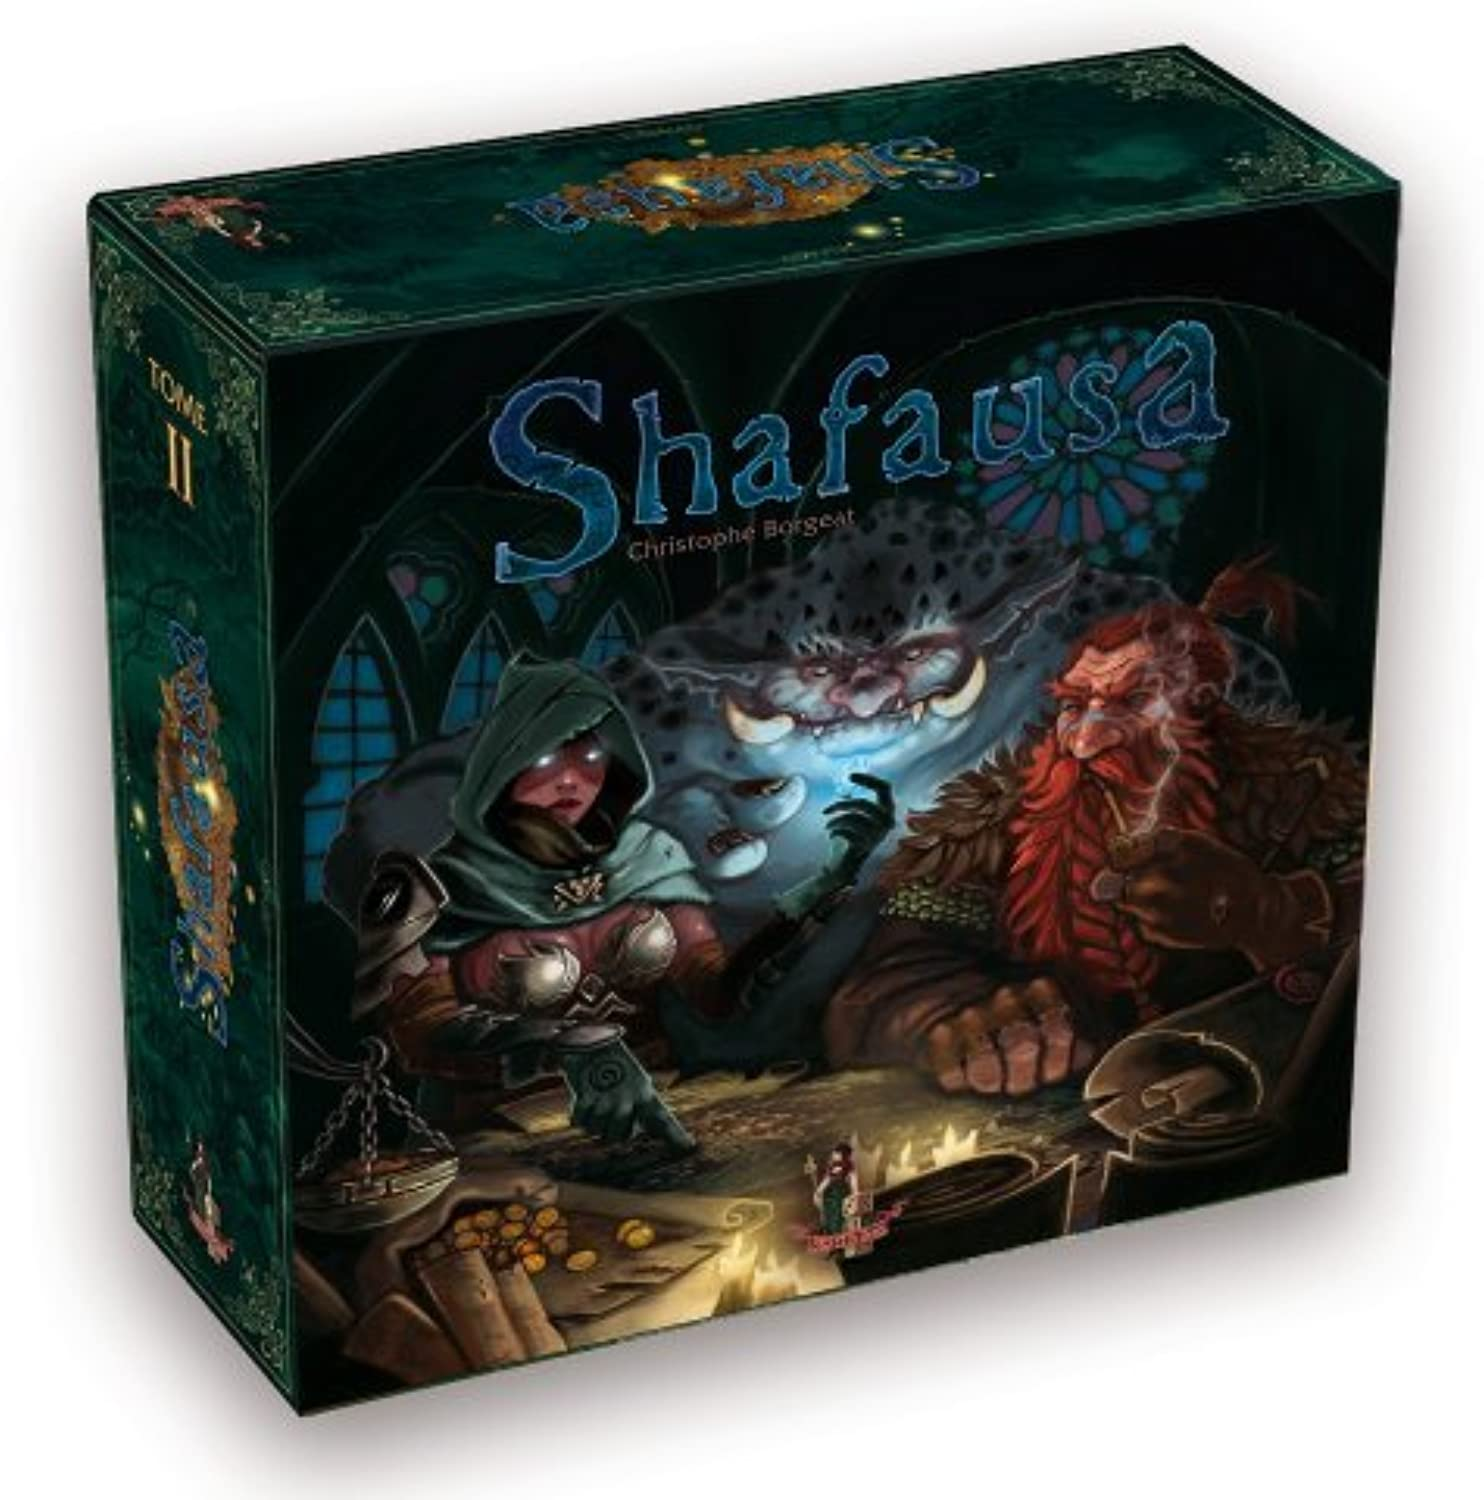 Shafausa Game by Helvetia Games